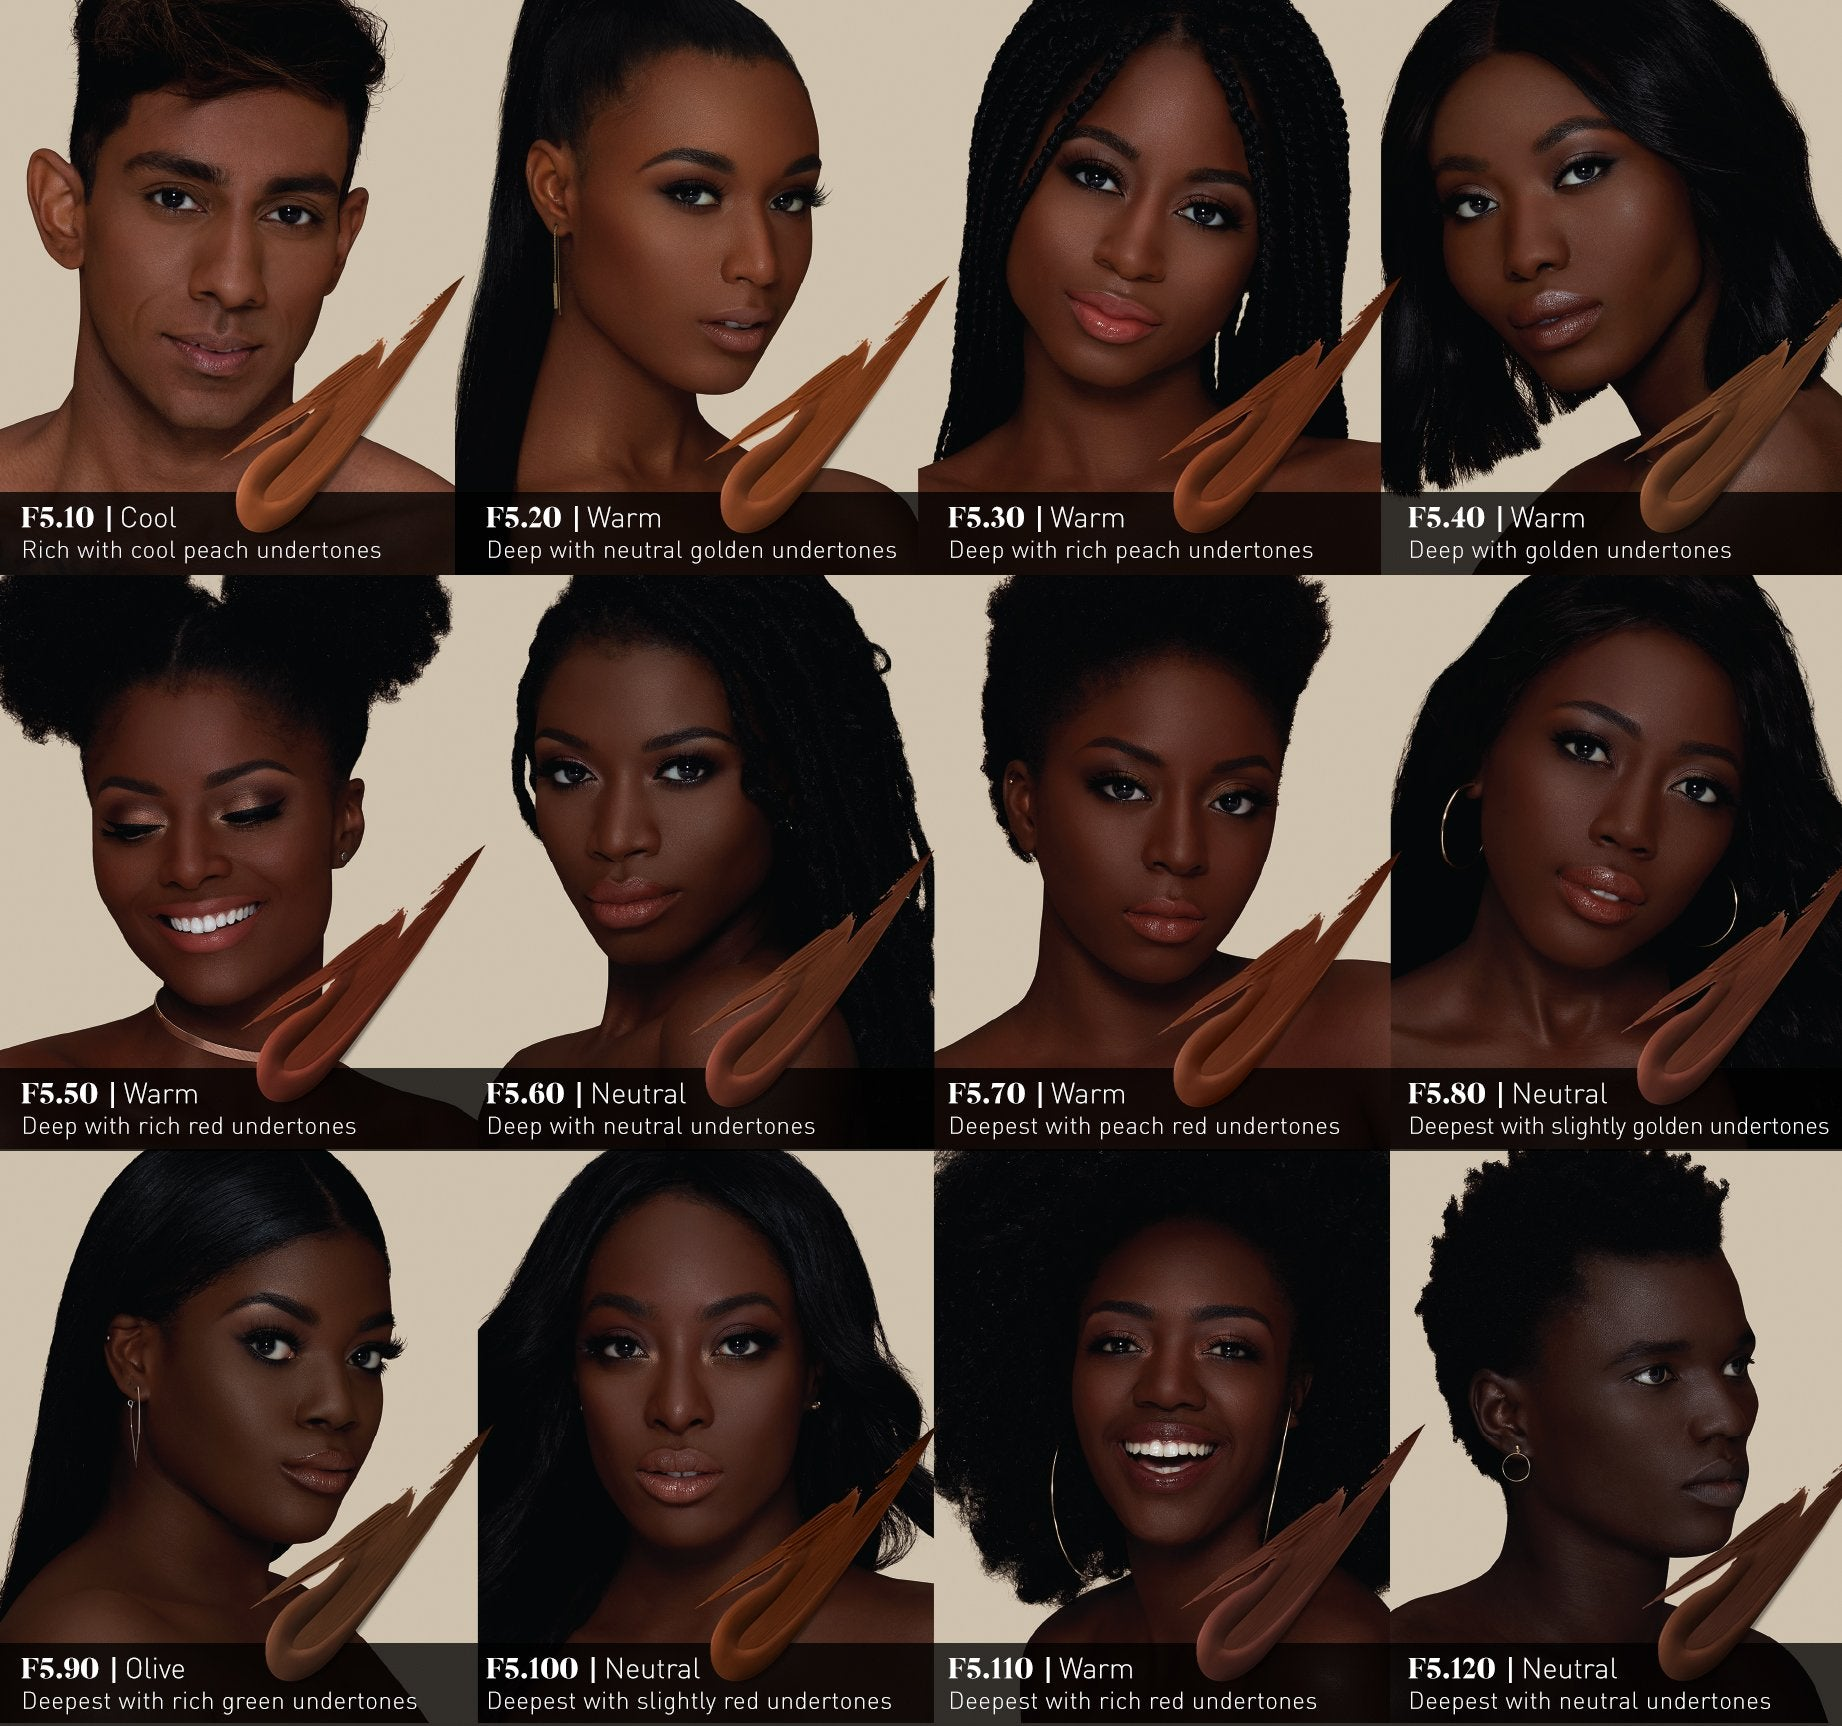 FLUIDITY FULL-COVERAGE FOUNDATION - F5.110 ON MODEL, view larger image